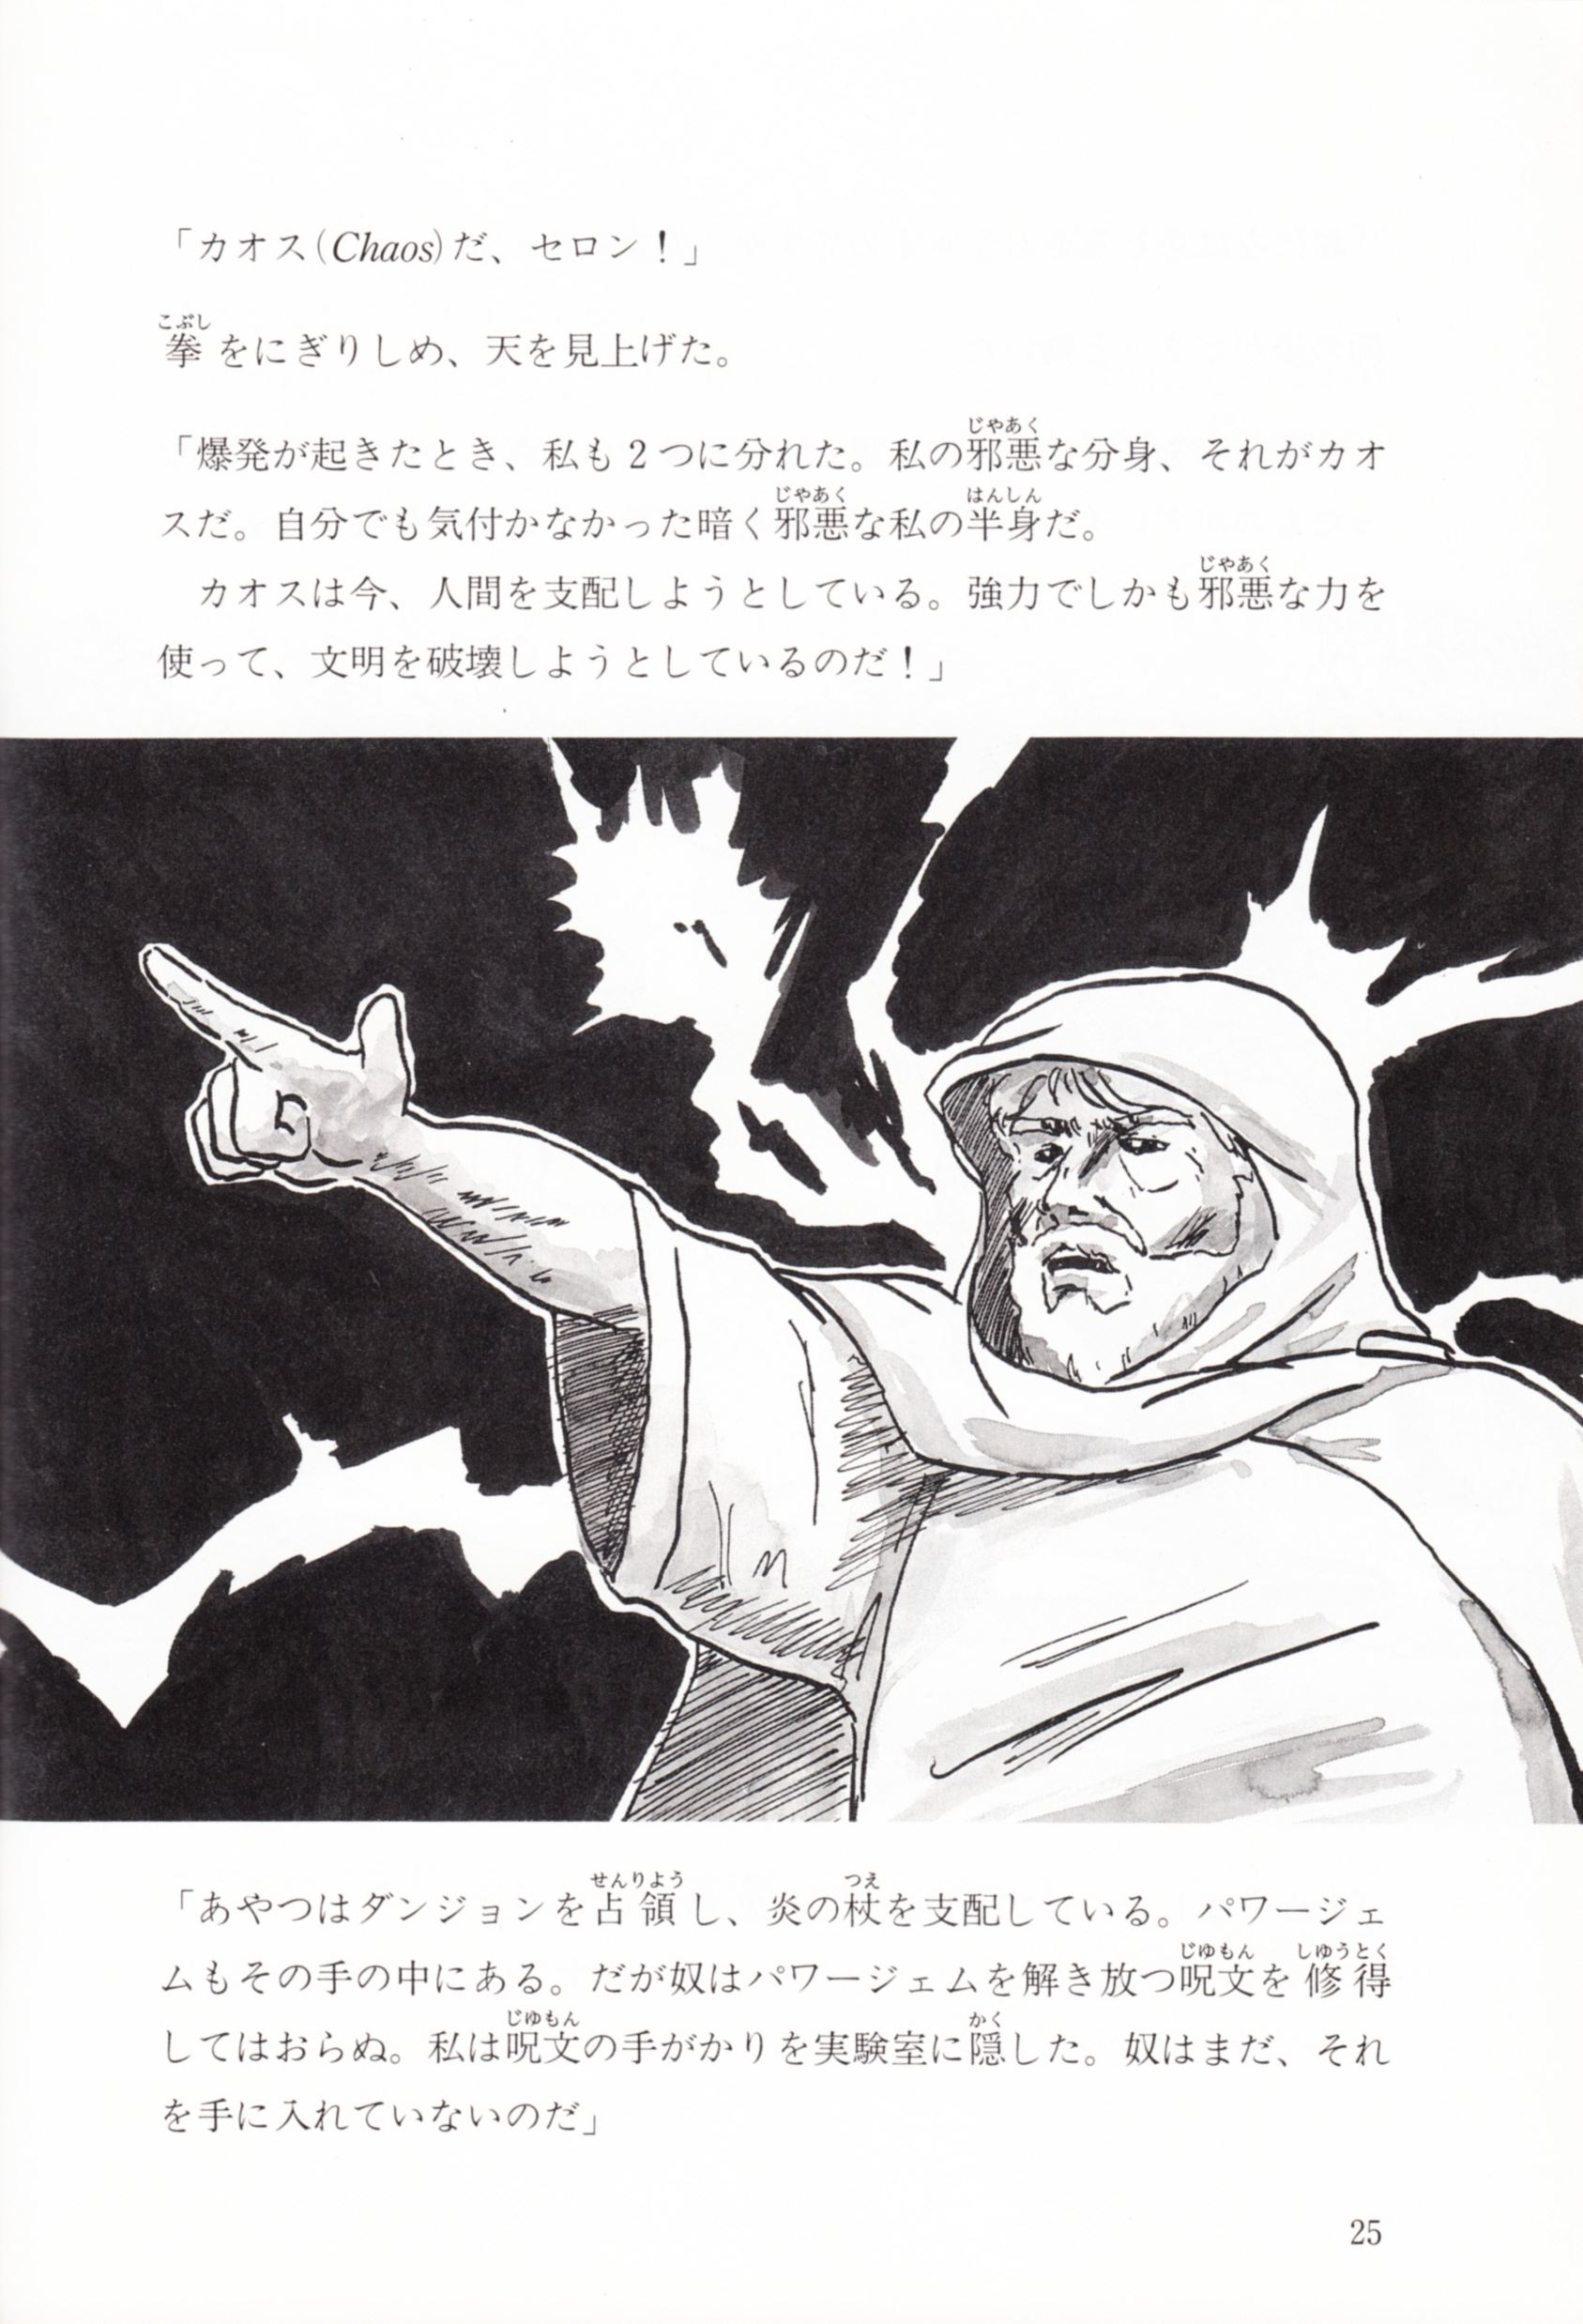 Game - Dungeon Master - JP - FM Towns - Story Guide - Page 027 - Scan